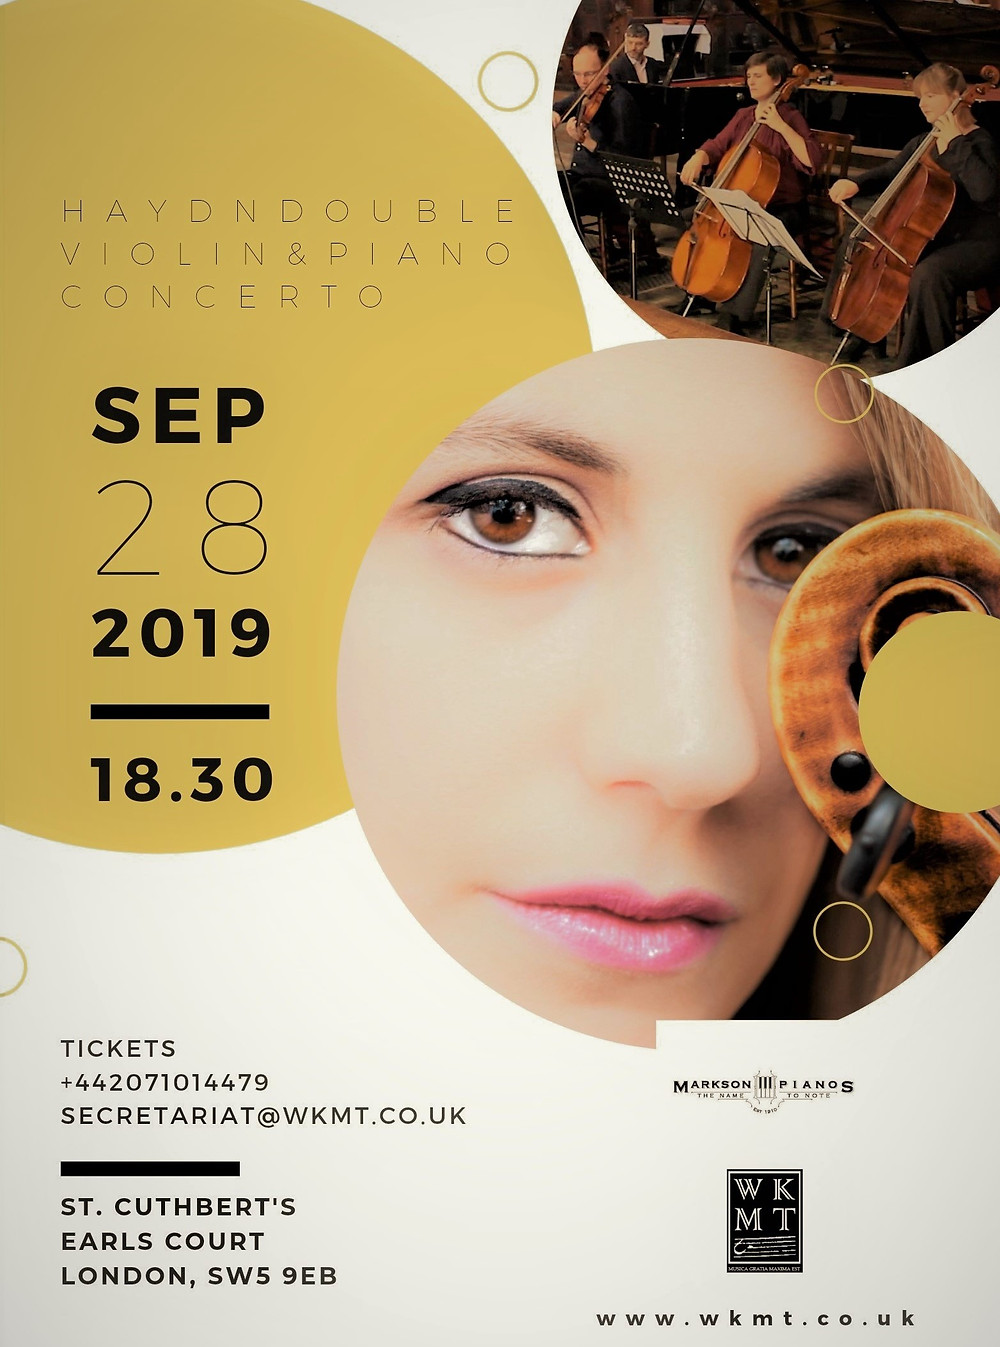 Haydn concerto in London by WKMT